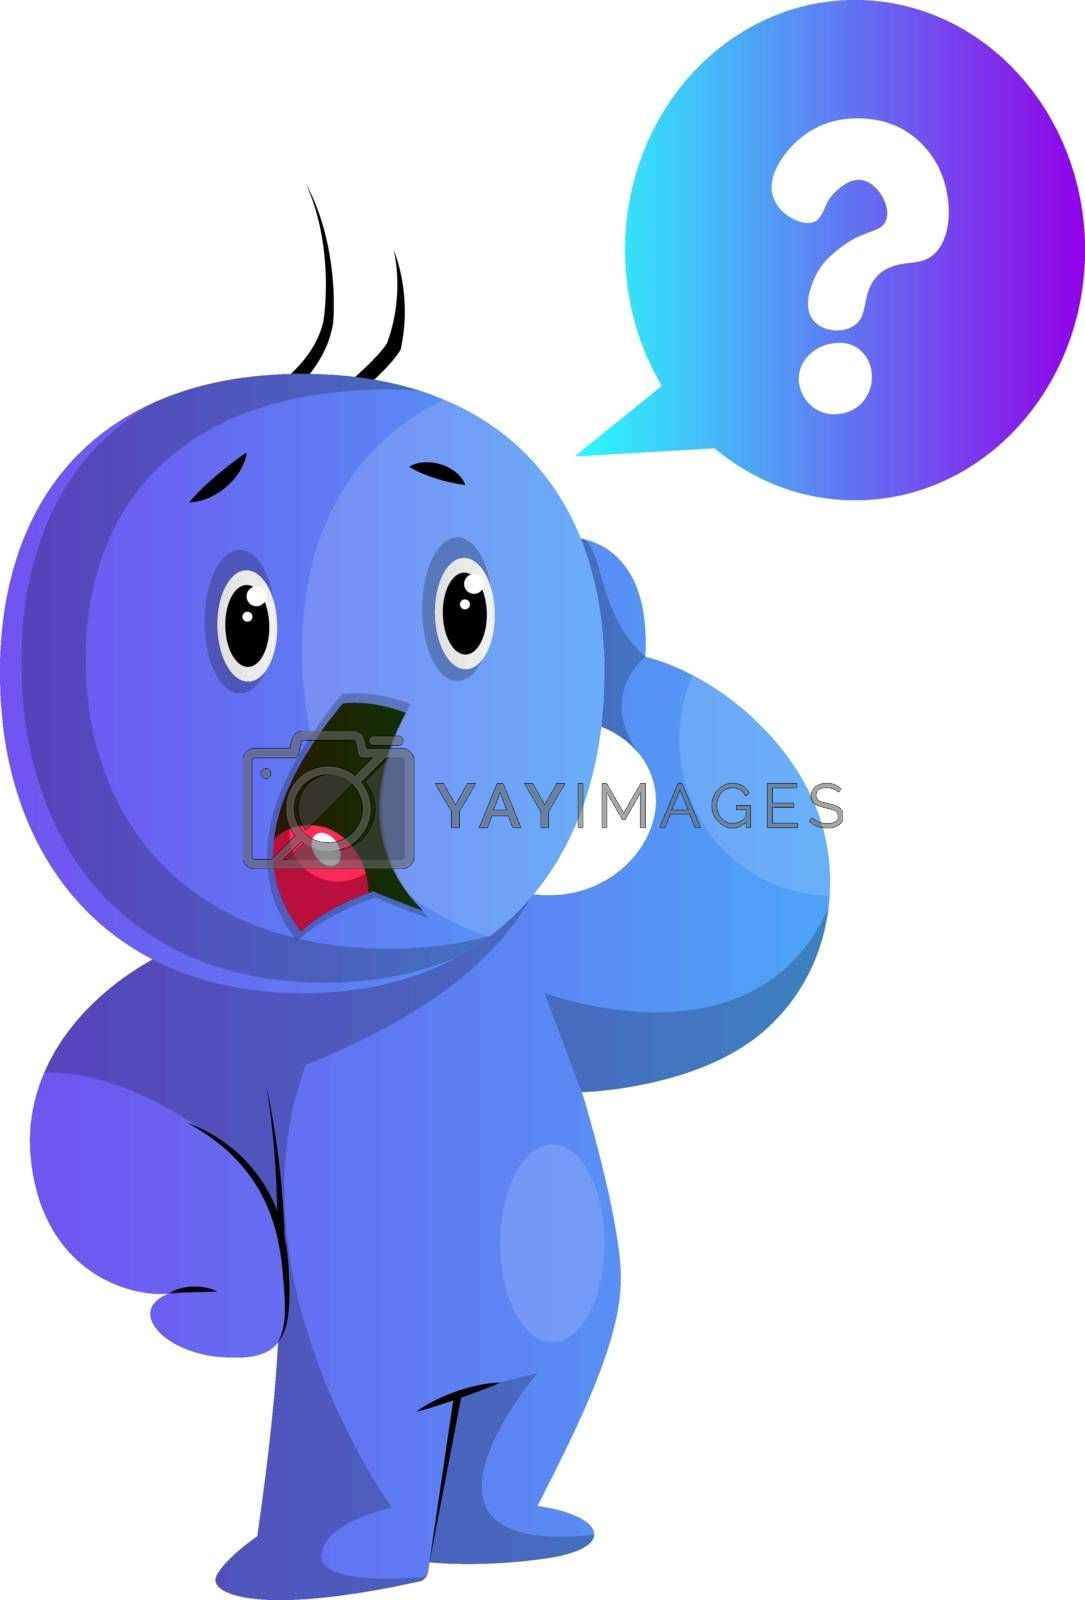 Royalty free image of Blue cartoon caracter worried illustration vector on white backg by Morphart